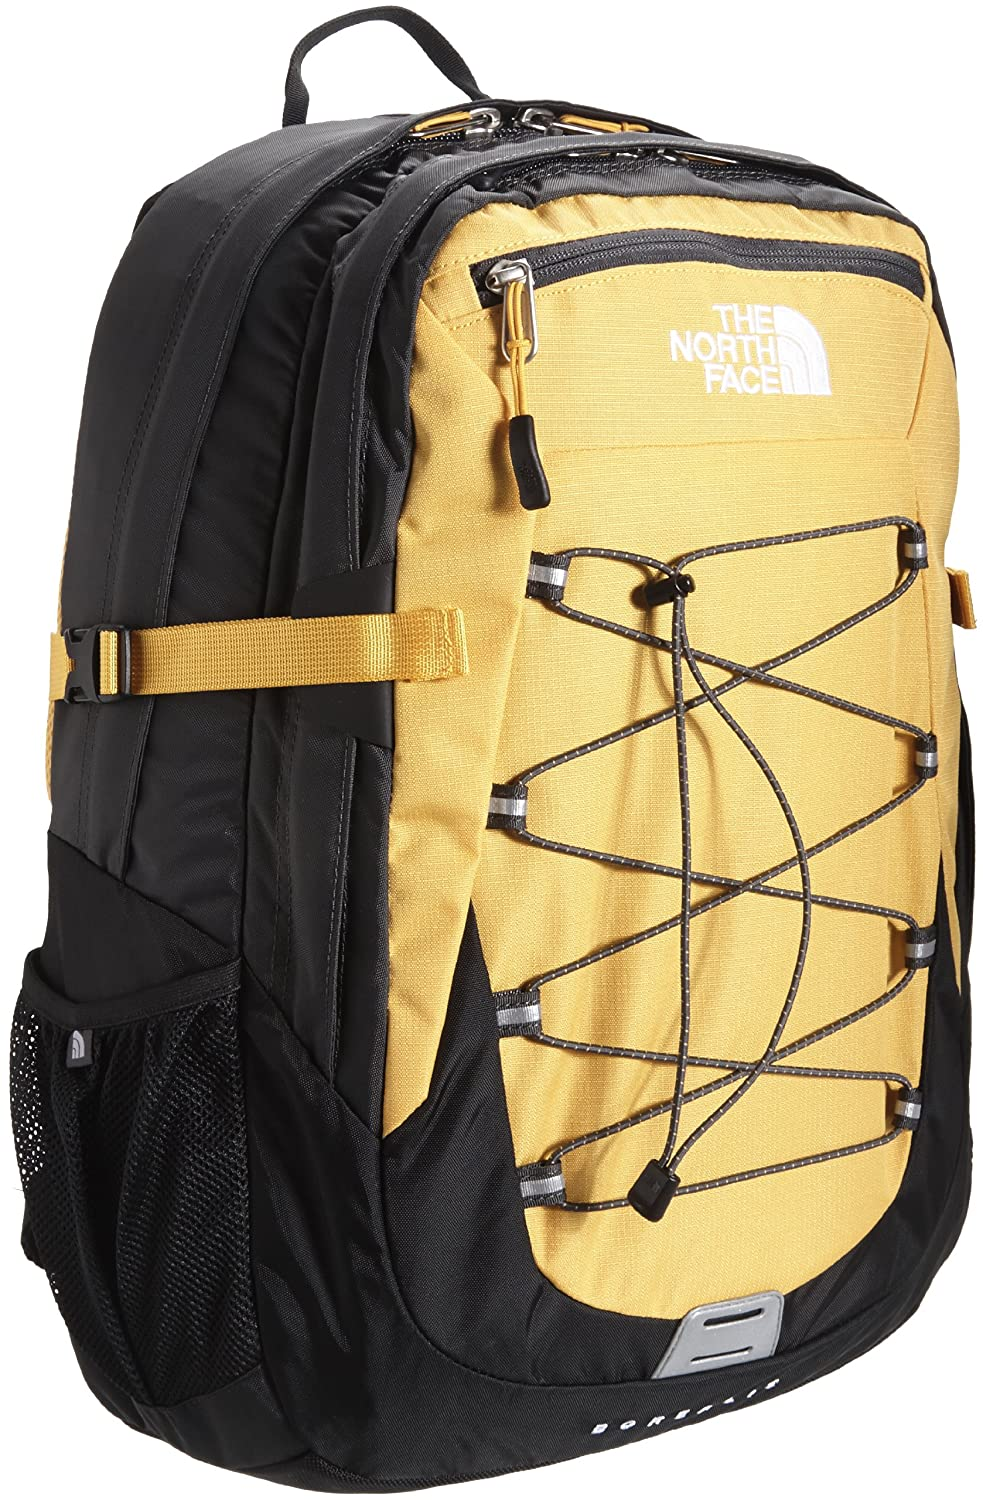 buy northface backpacks